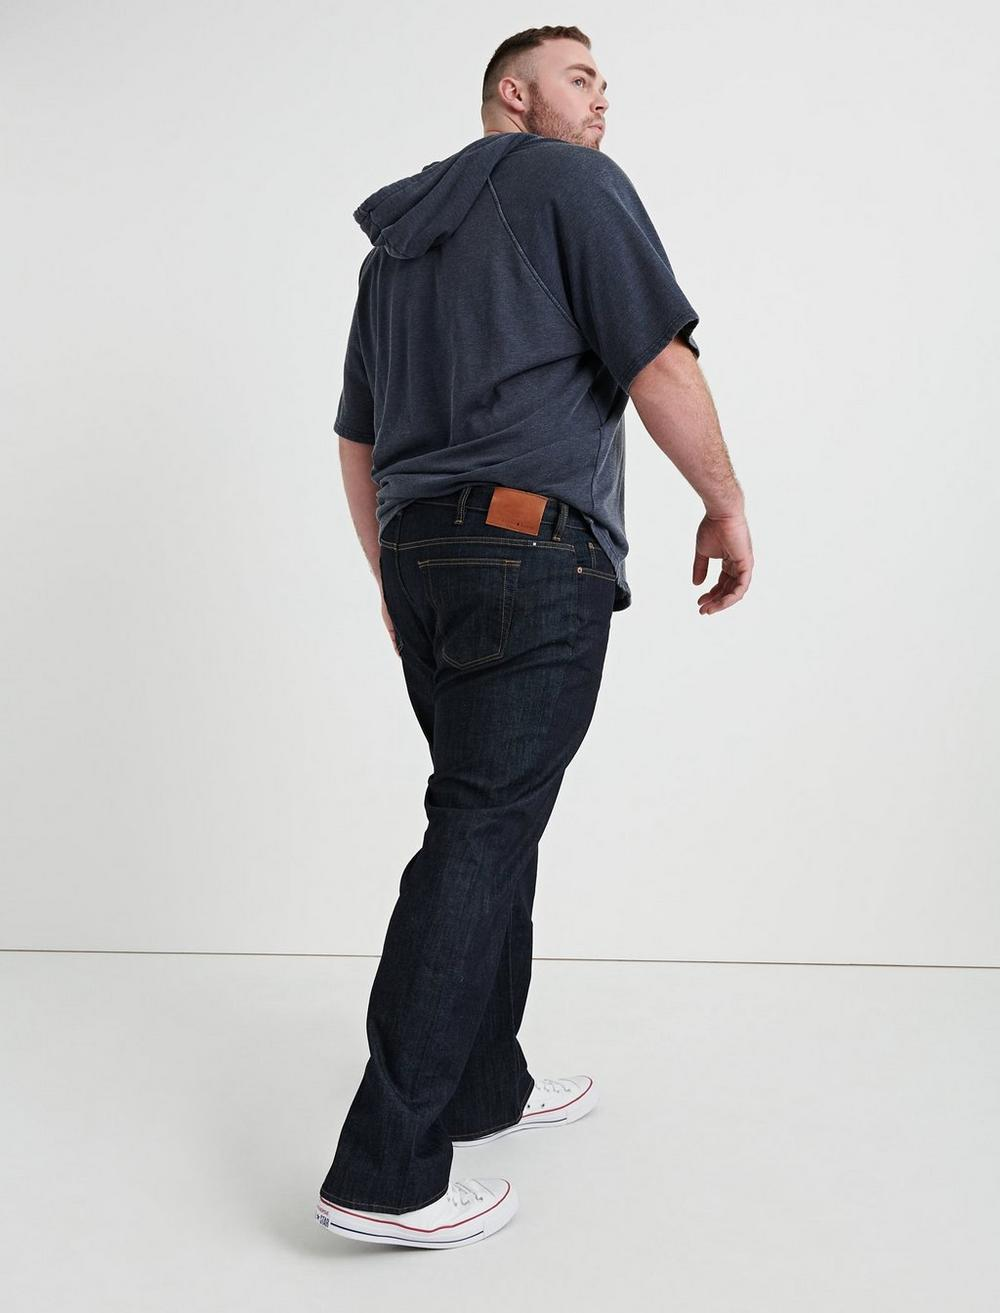 181 RELAXED STRAIGHT BIG & TALL JEAN, image 3